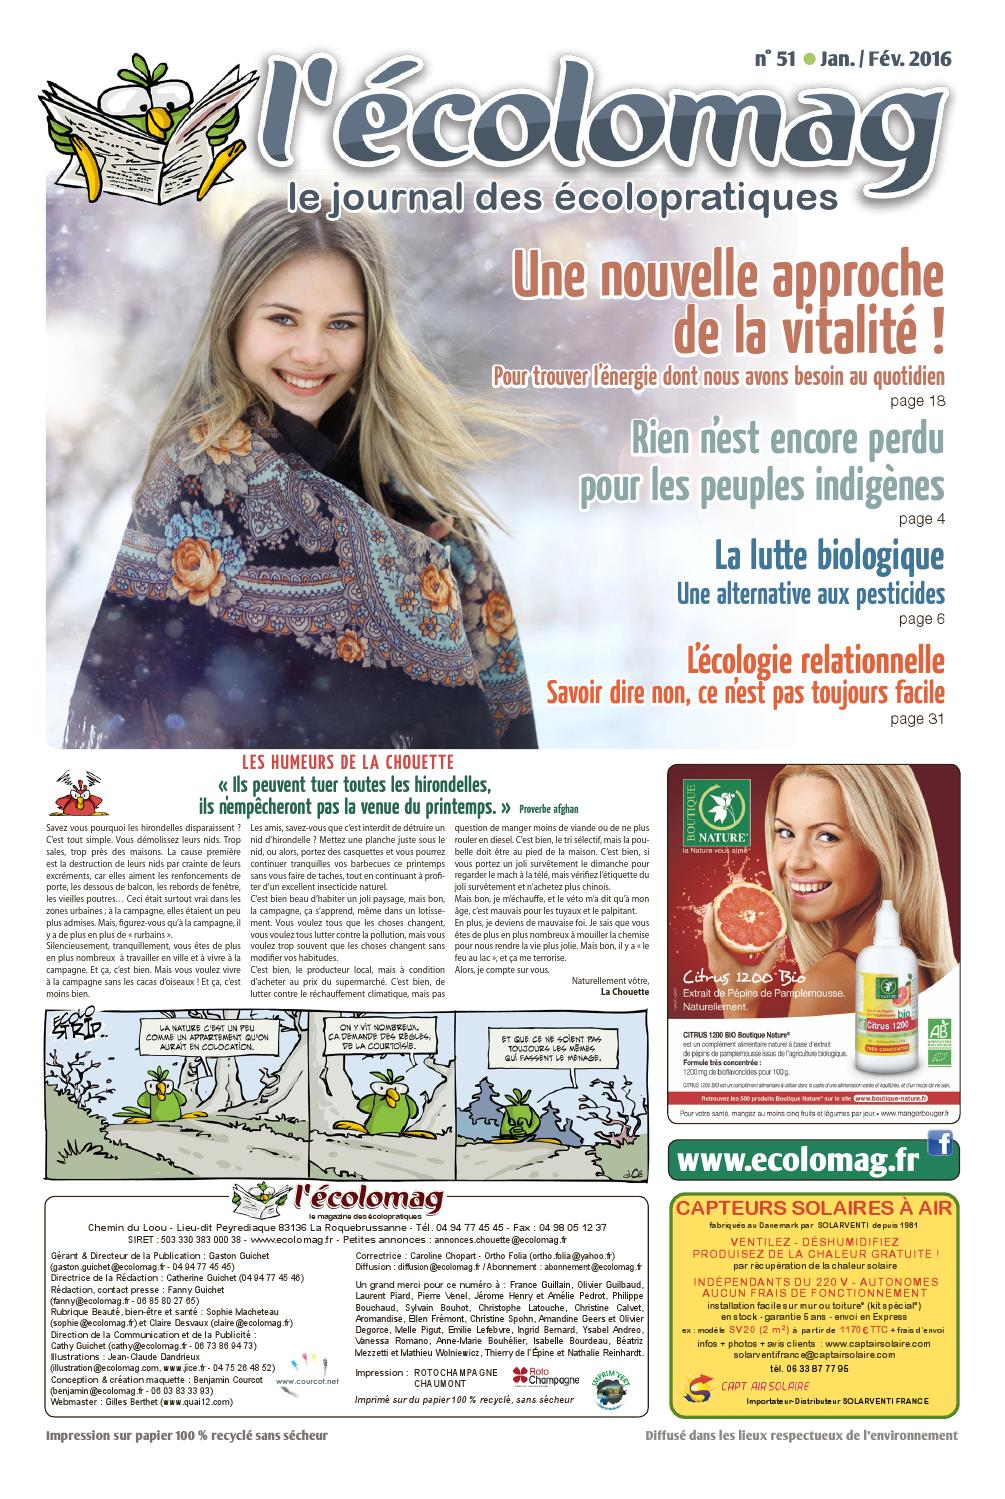 L Ecolomag n°51 by L Ecolomag - issuu e0251d44bde